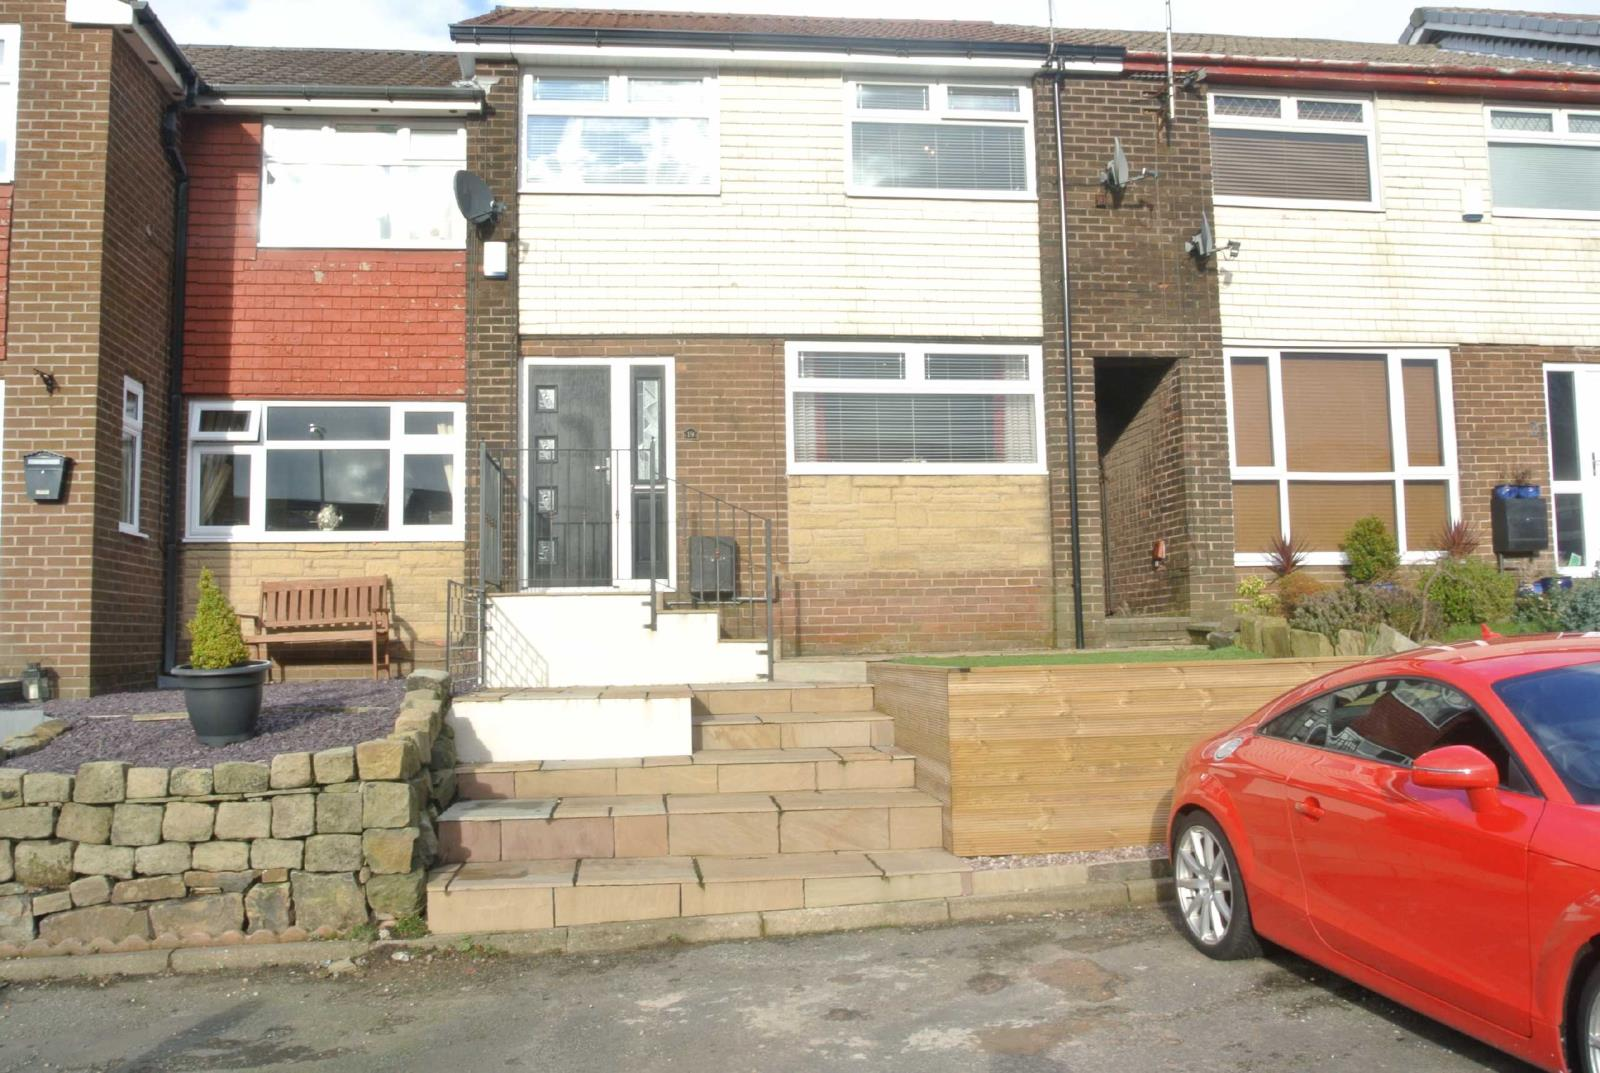 3 Bedrooms Terraced House for sale in Link Road, Springhead, Saddleworth, OL4